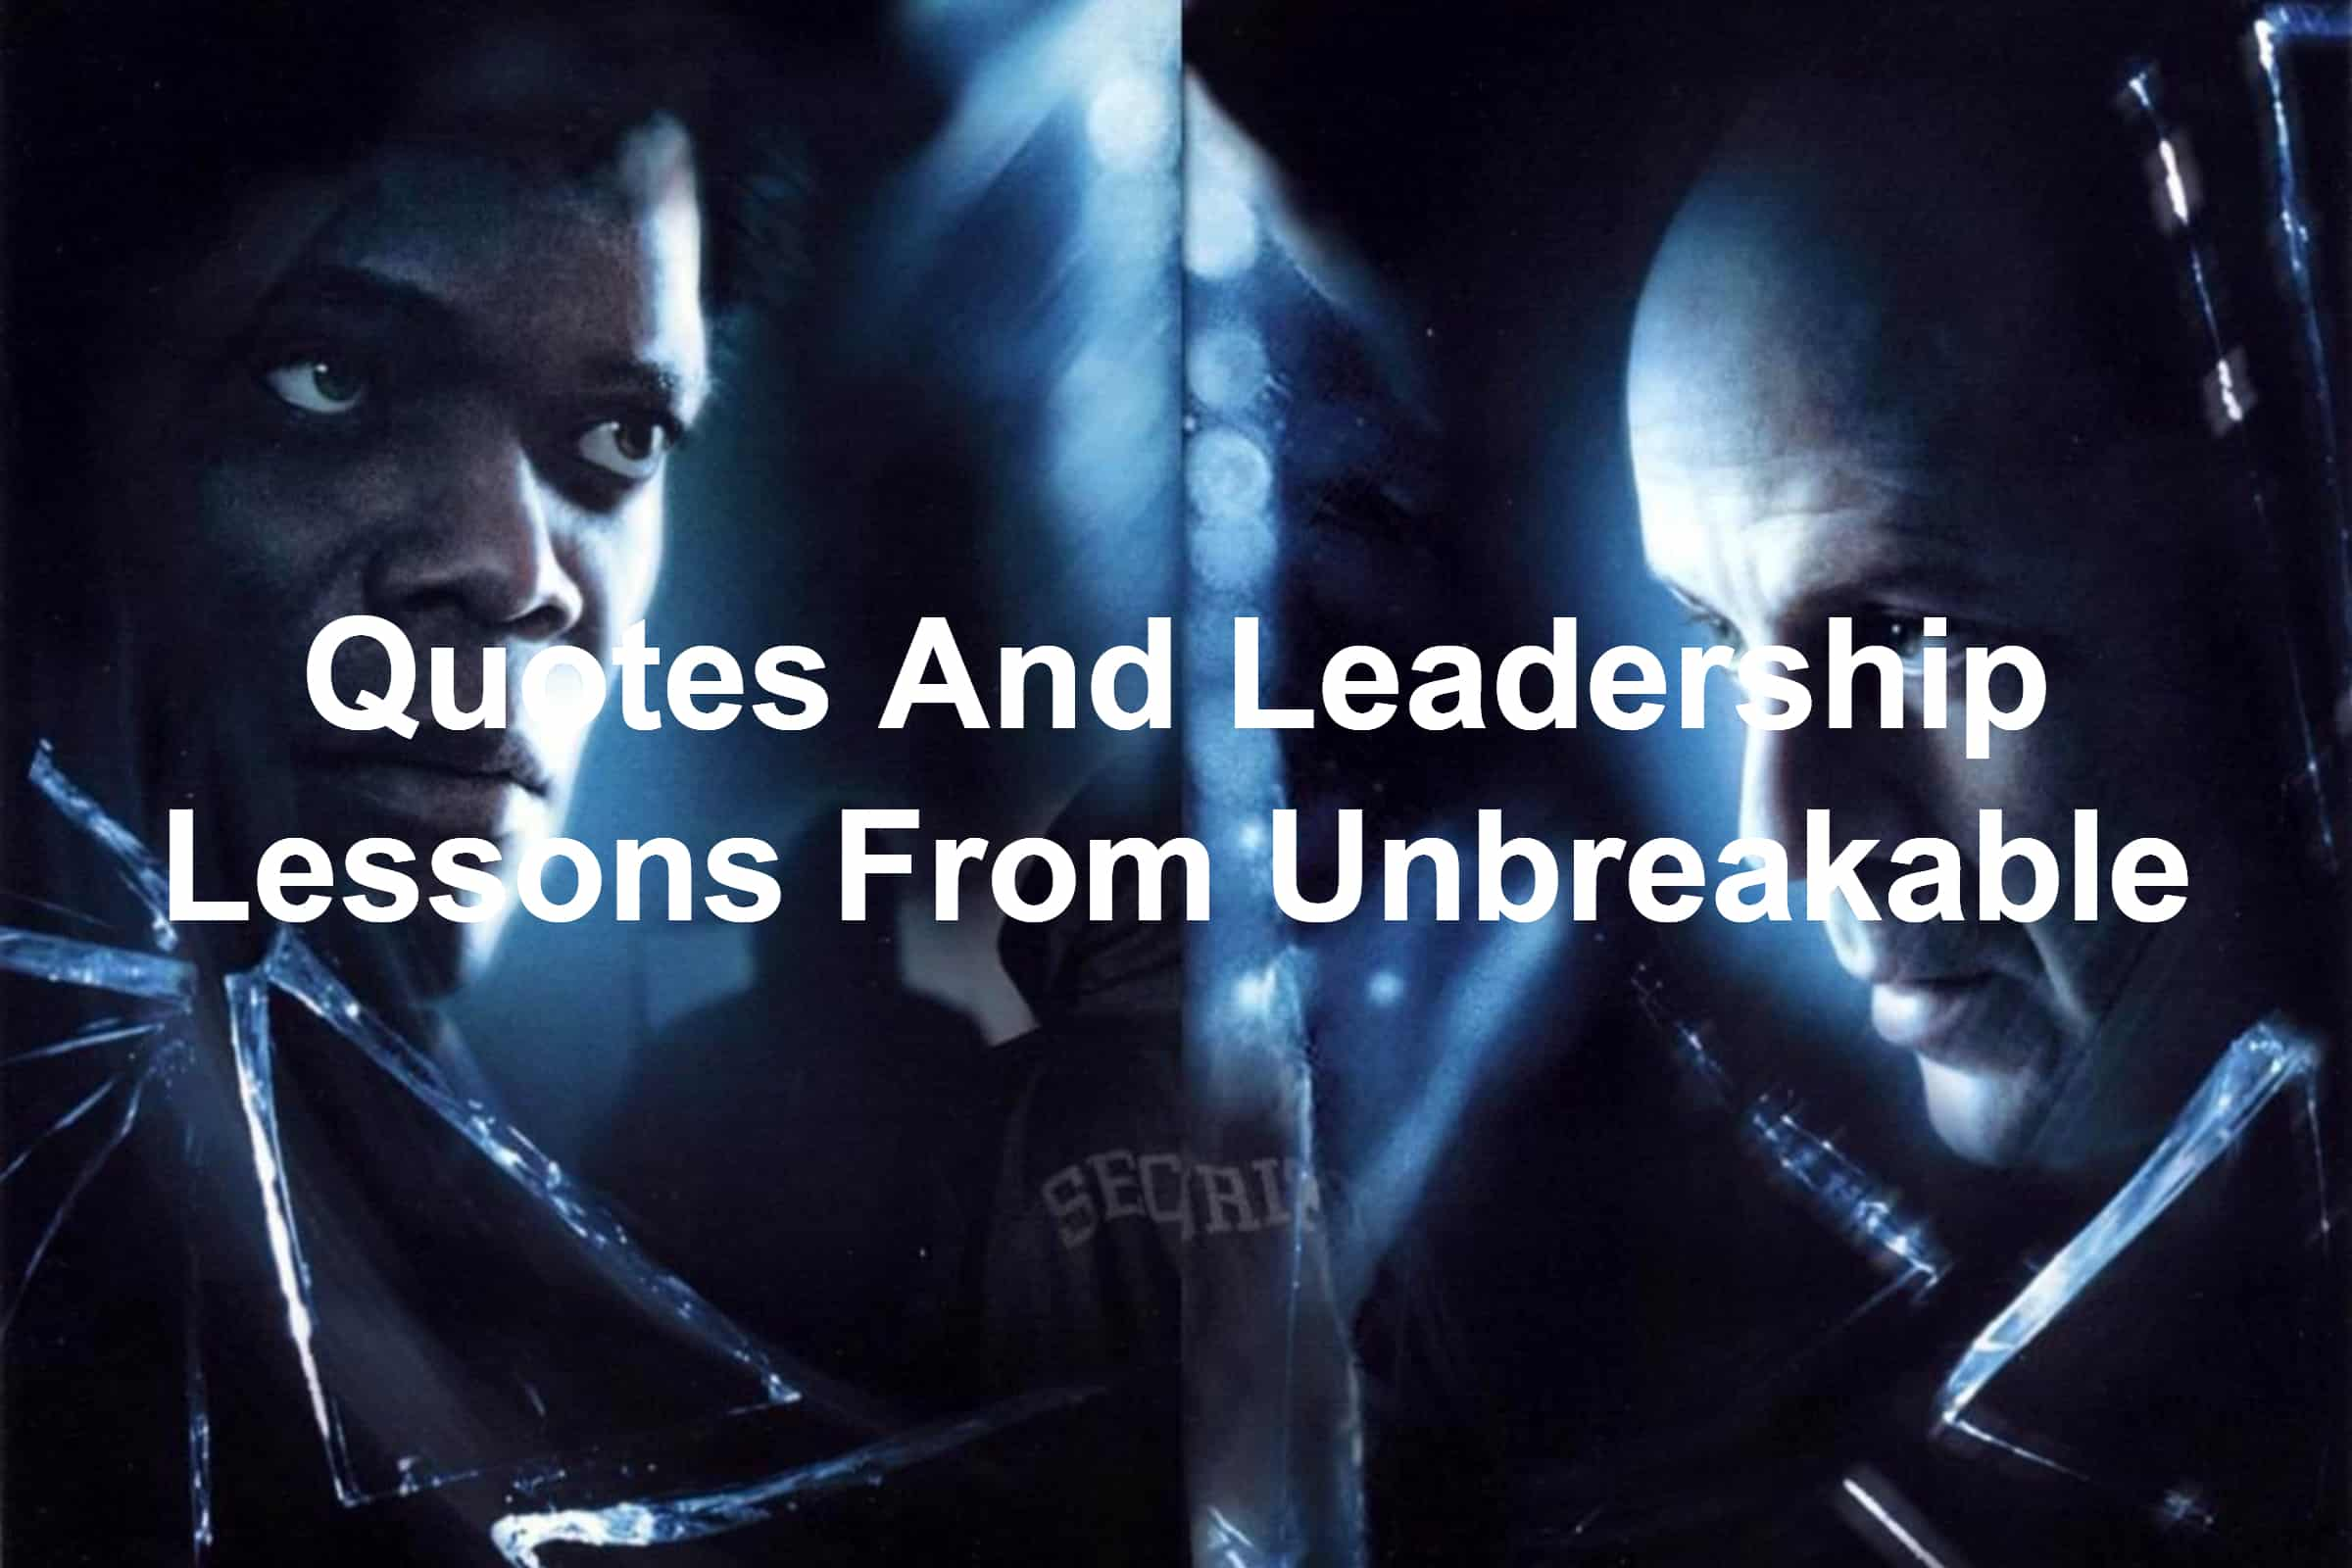 Quotes and leadership lessons from Unbreakable with Samuel L. Jackson and Bruce Willis